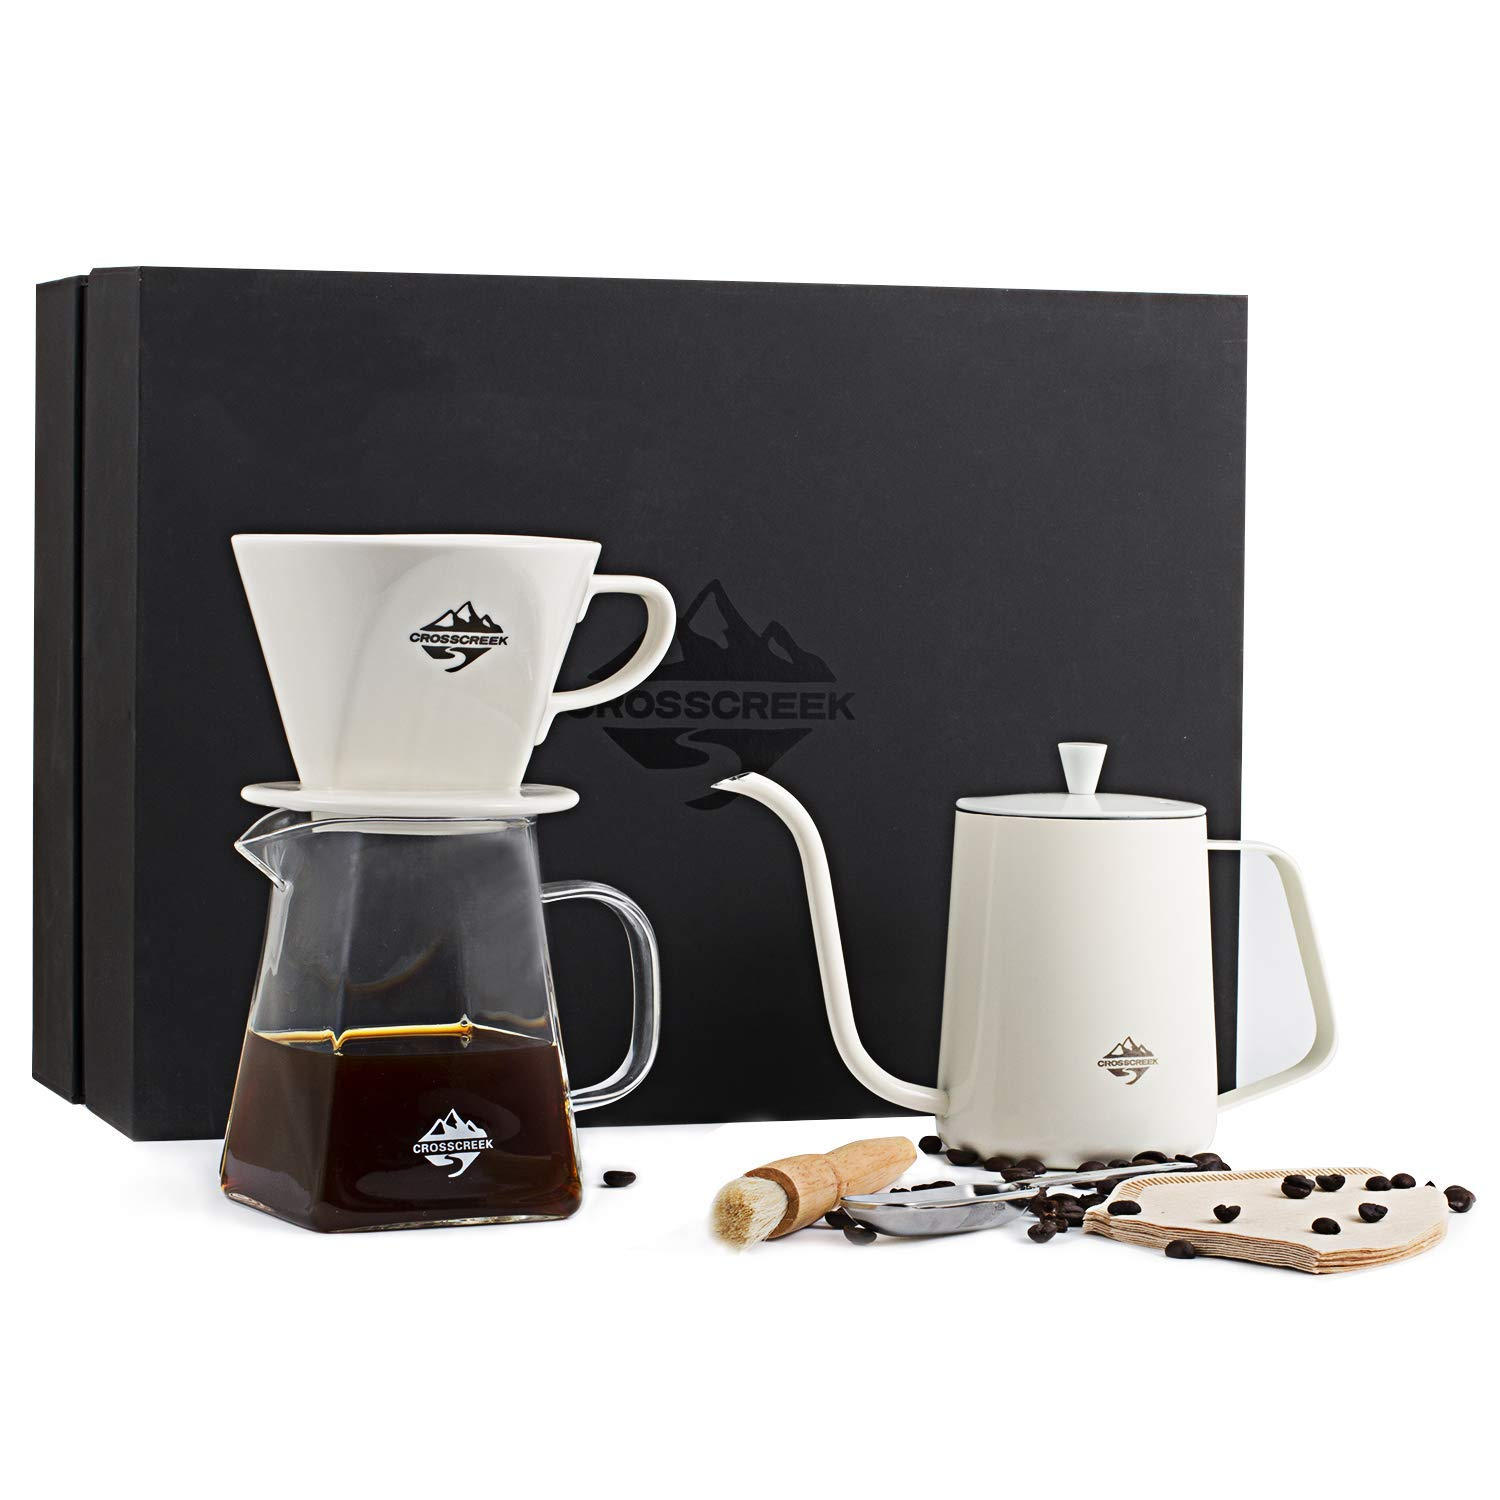 venus manufacture: crosscreek coffee maker set, stainless steel coffee  kettle, glass square carafe, ceramics coffee dripper, coffee filters,  coffee